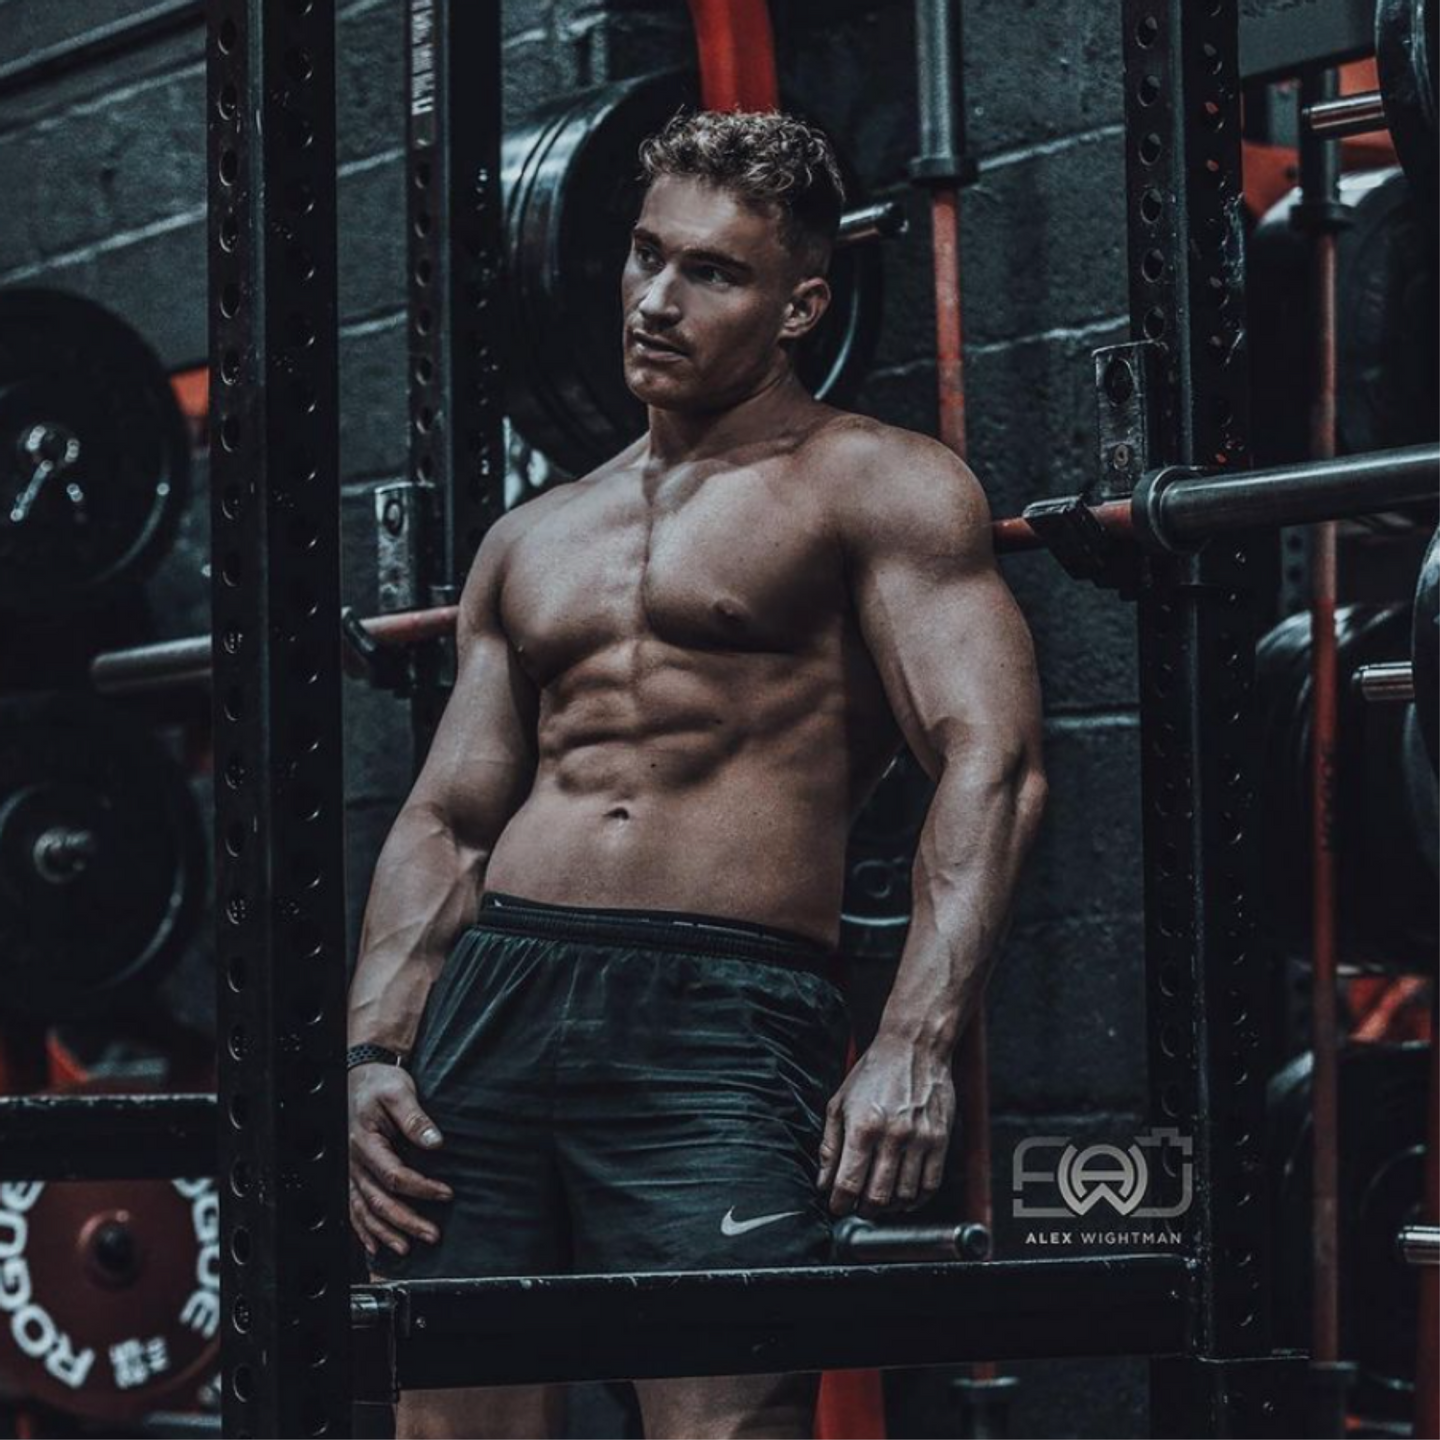 Pro Physiques Photoshoot Camp